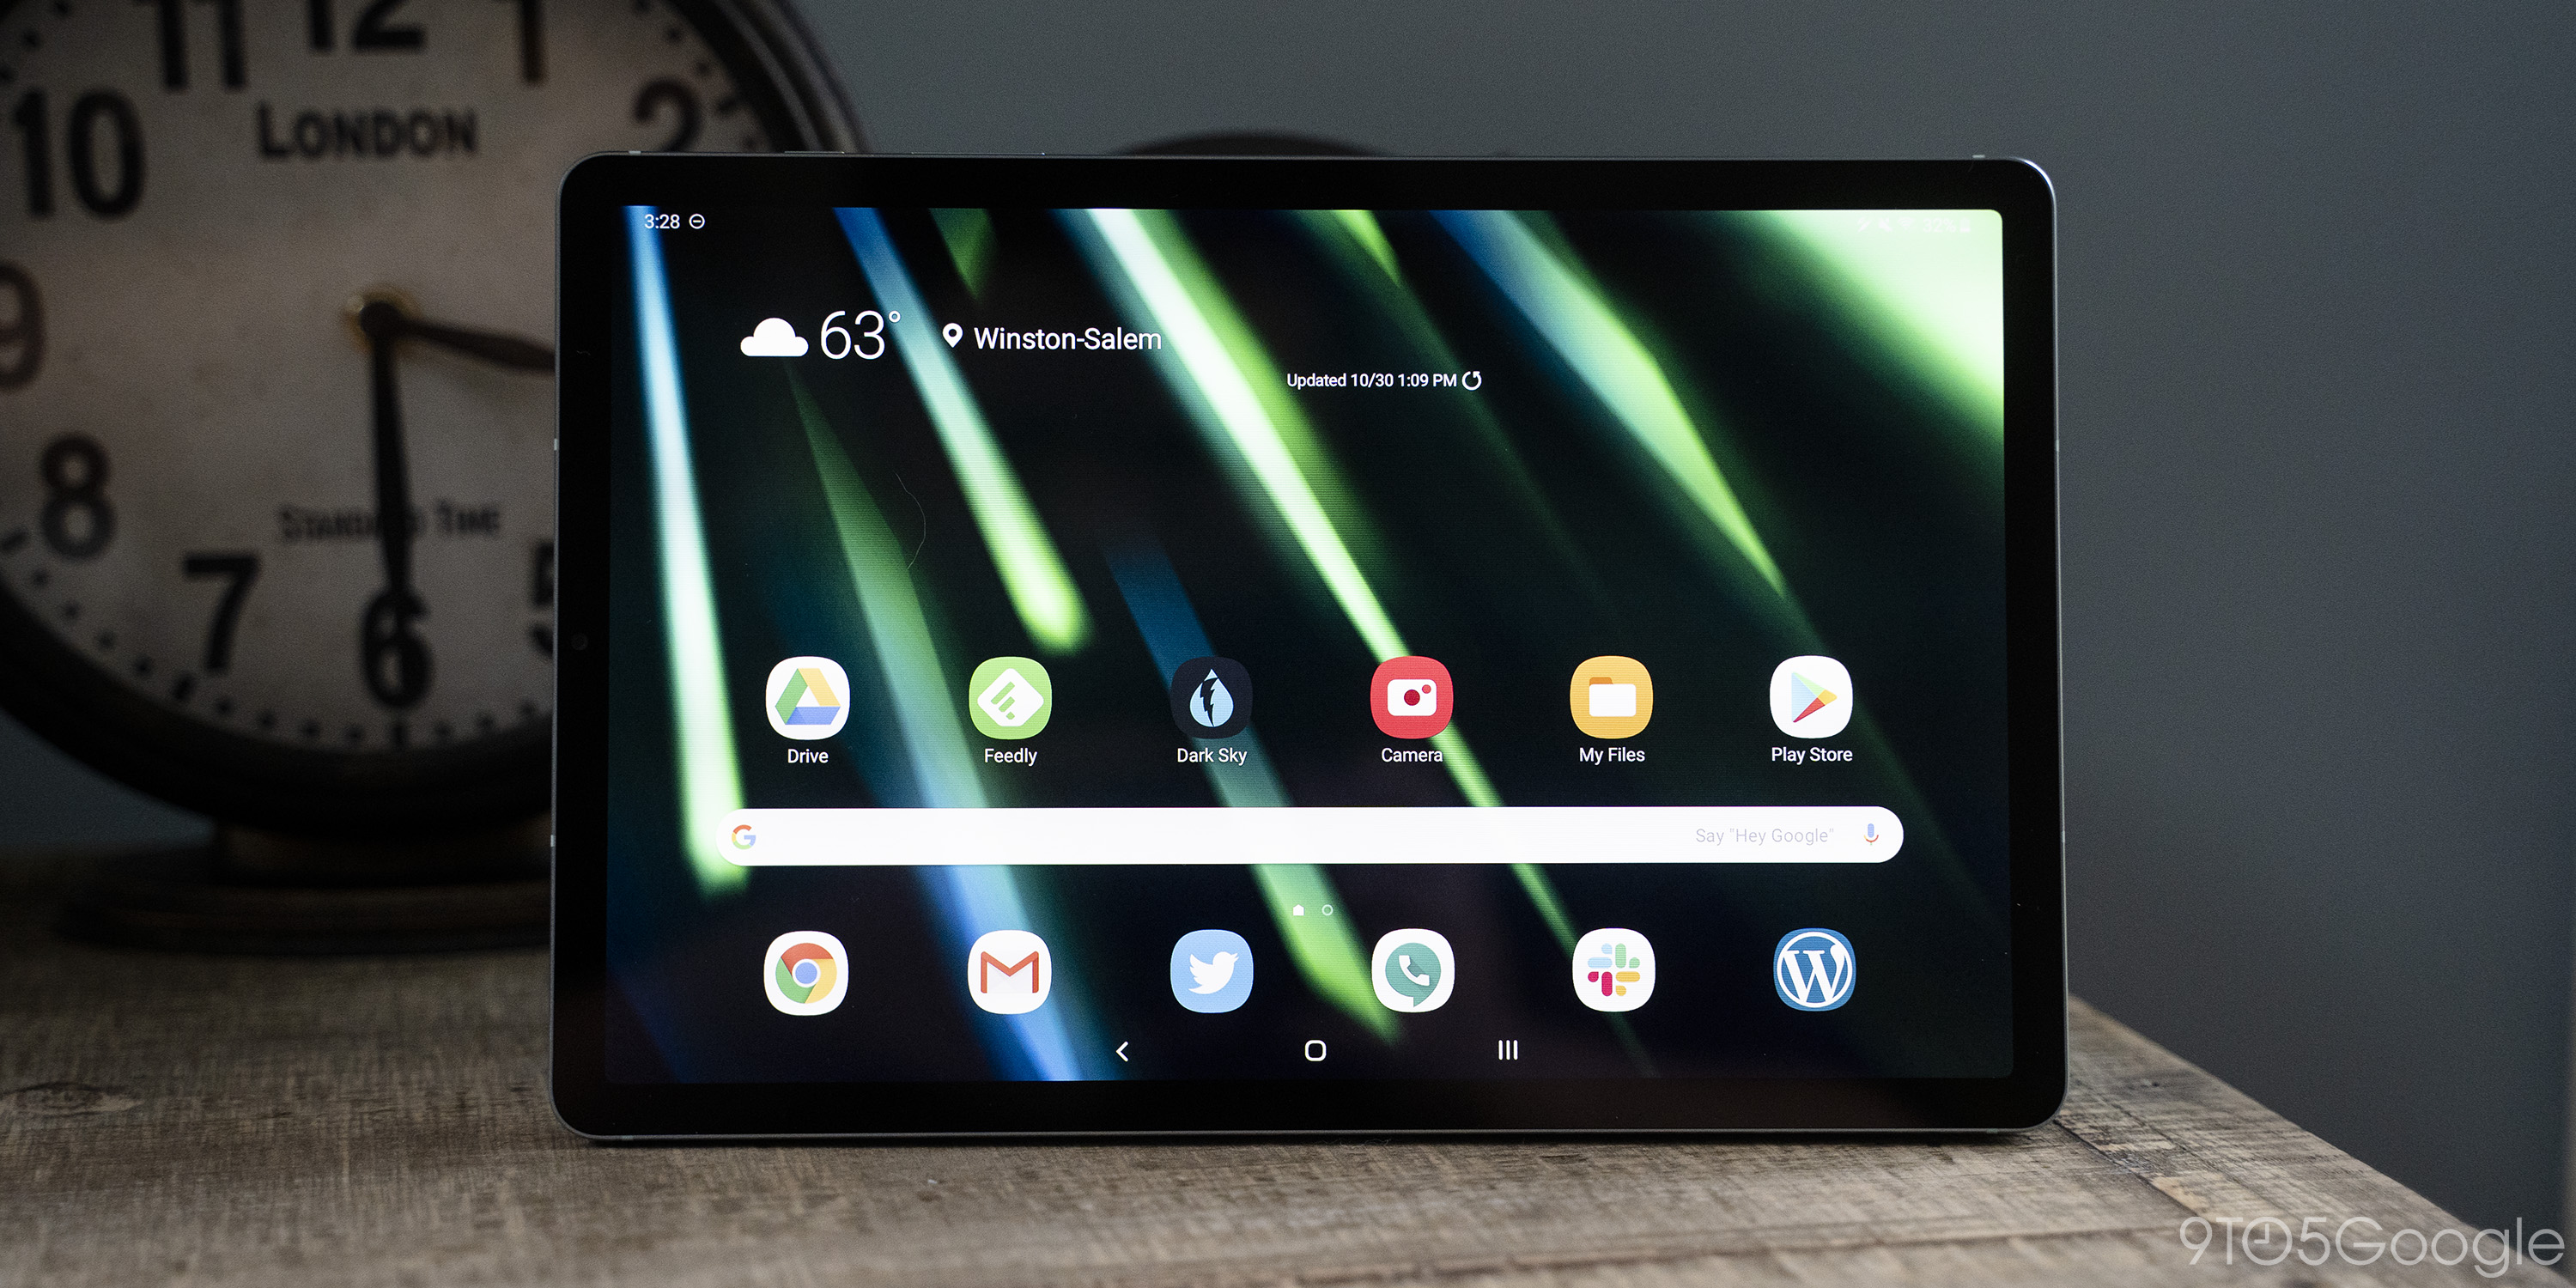 samsung galaxy tab s6 android display